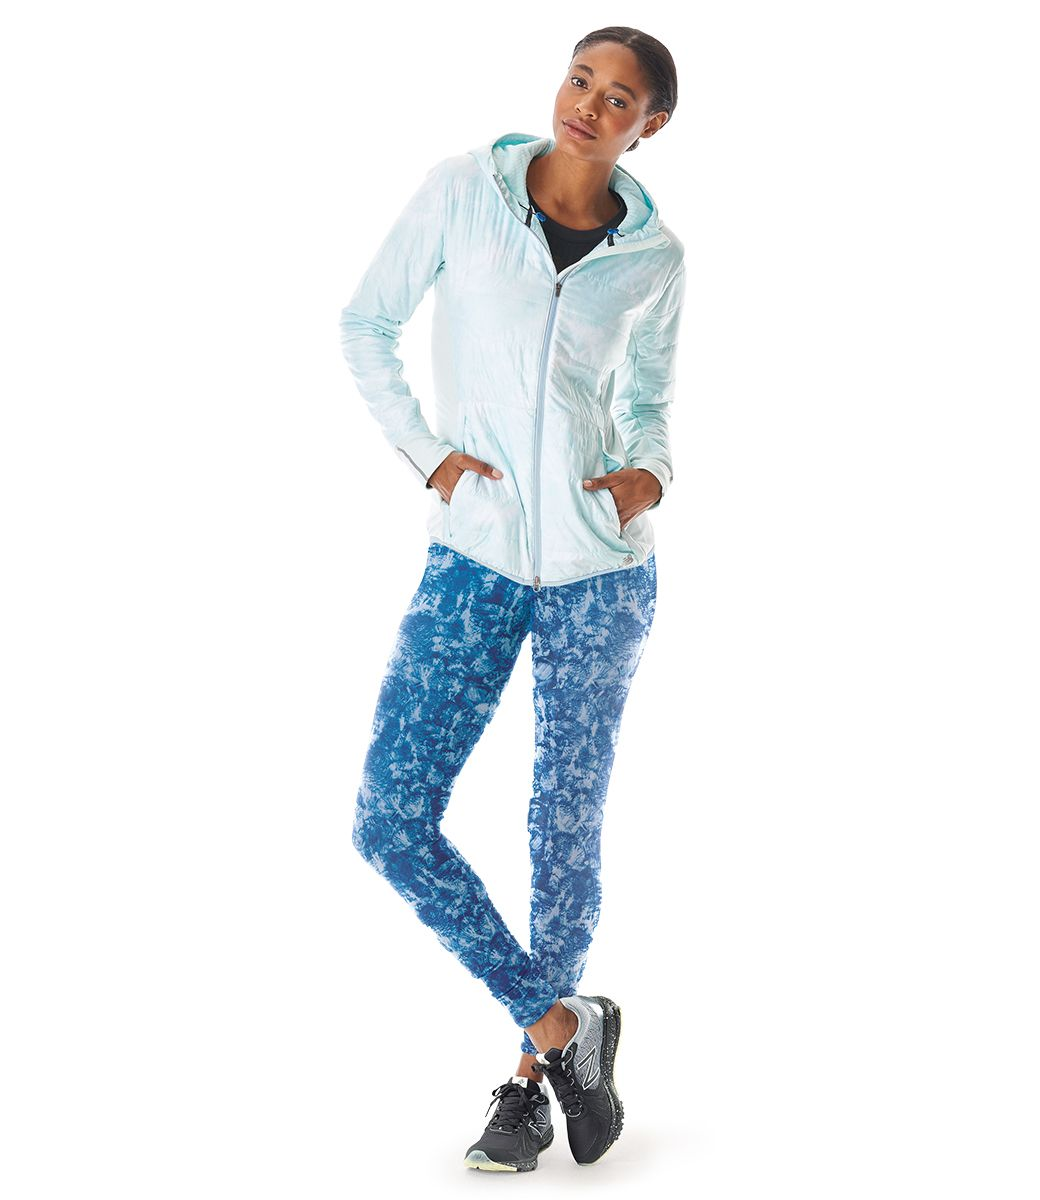 New Balance Womens November Pace Protect Pack and Seamless with NB Heat,